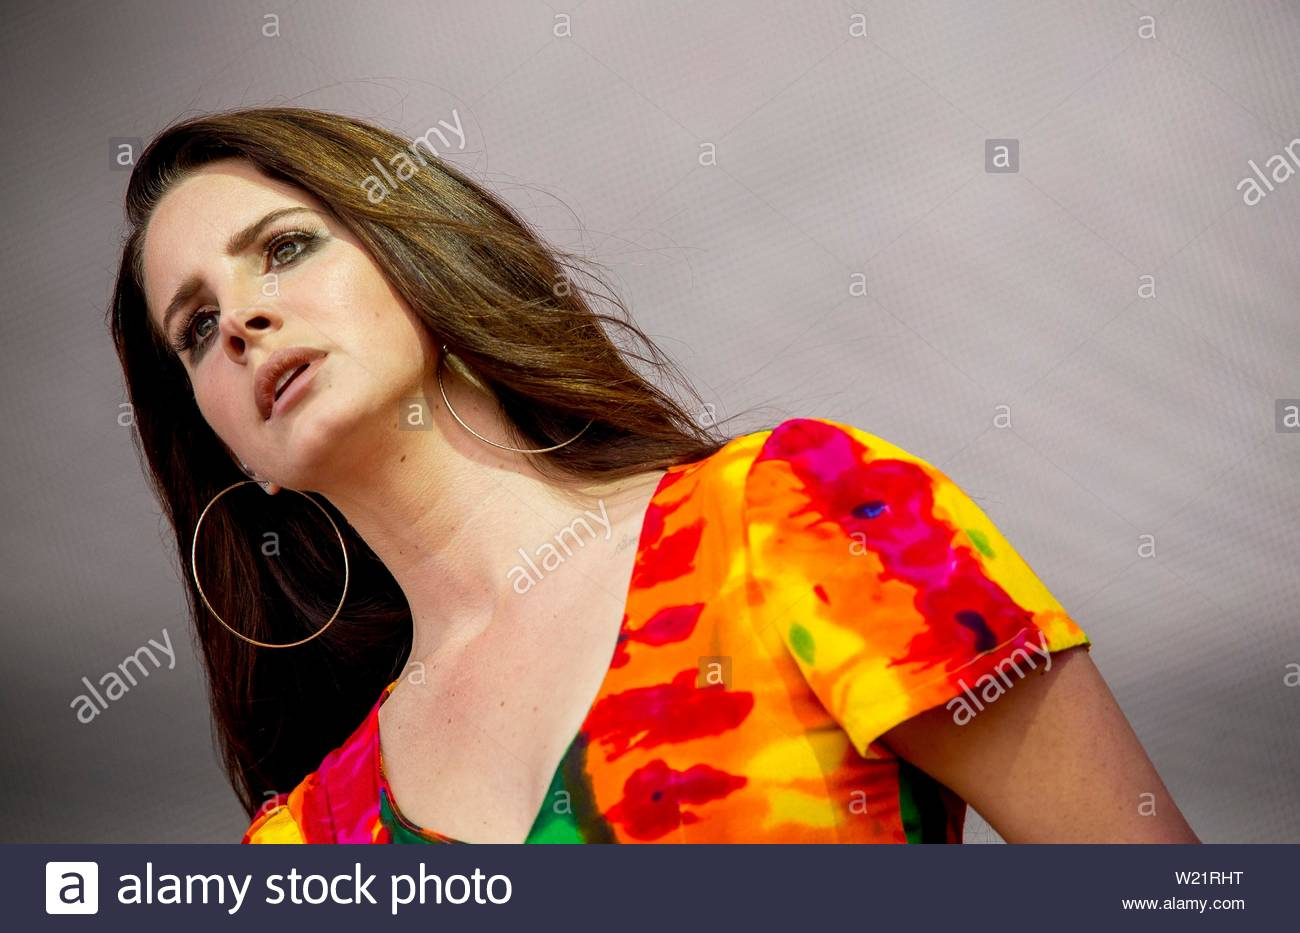 lana del rey performs on the pyramid stage on the saturday of glastonbury festival in pilton somerset W21RHT